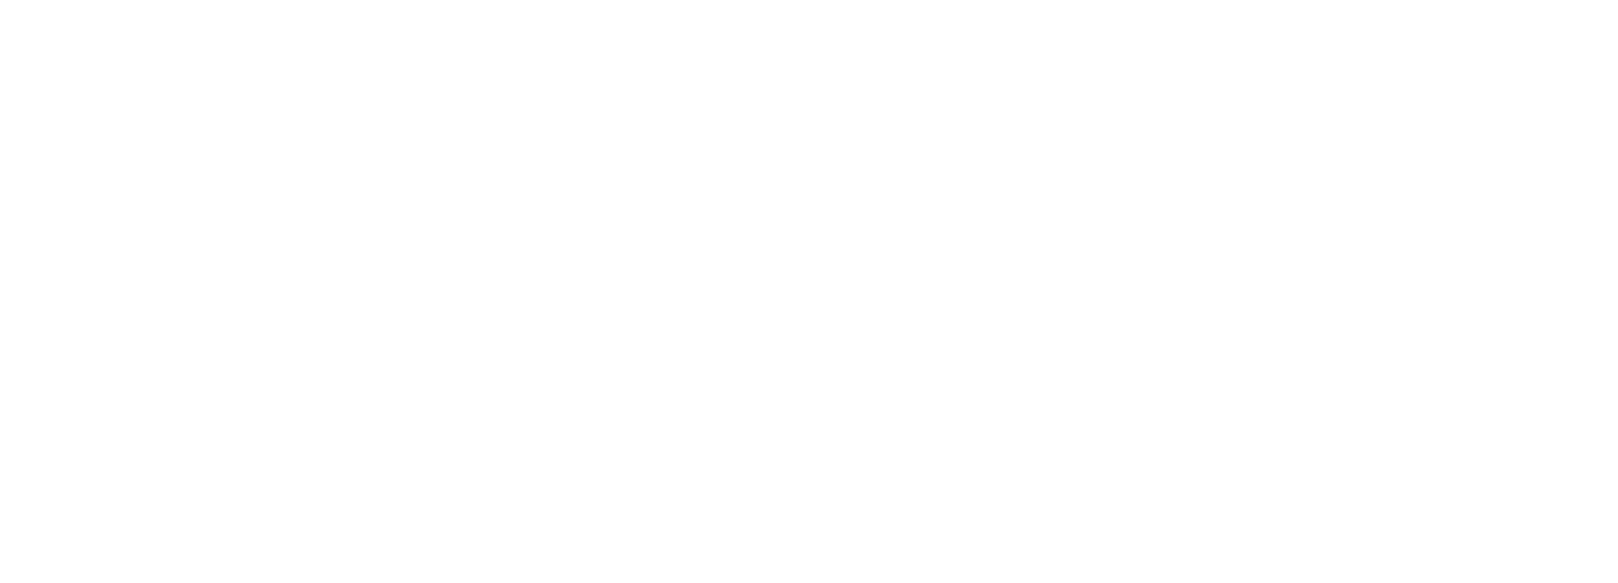 Community Action Team Inc. (C.A.T.)  - Columbia, Clatsop and Tillamook Counties